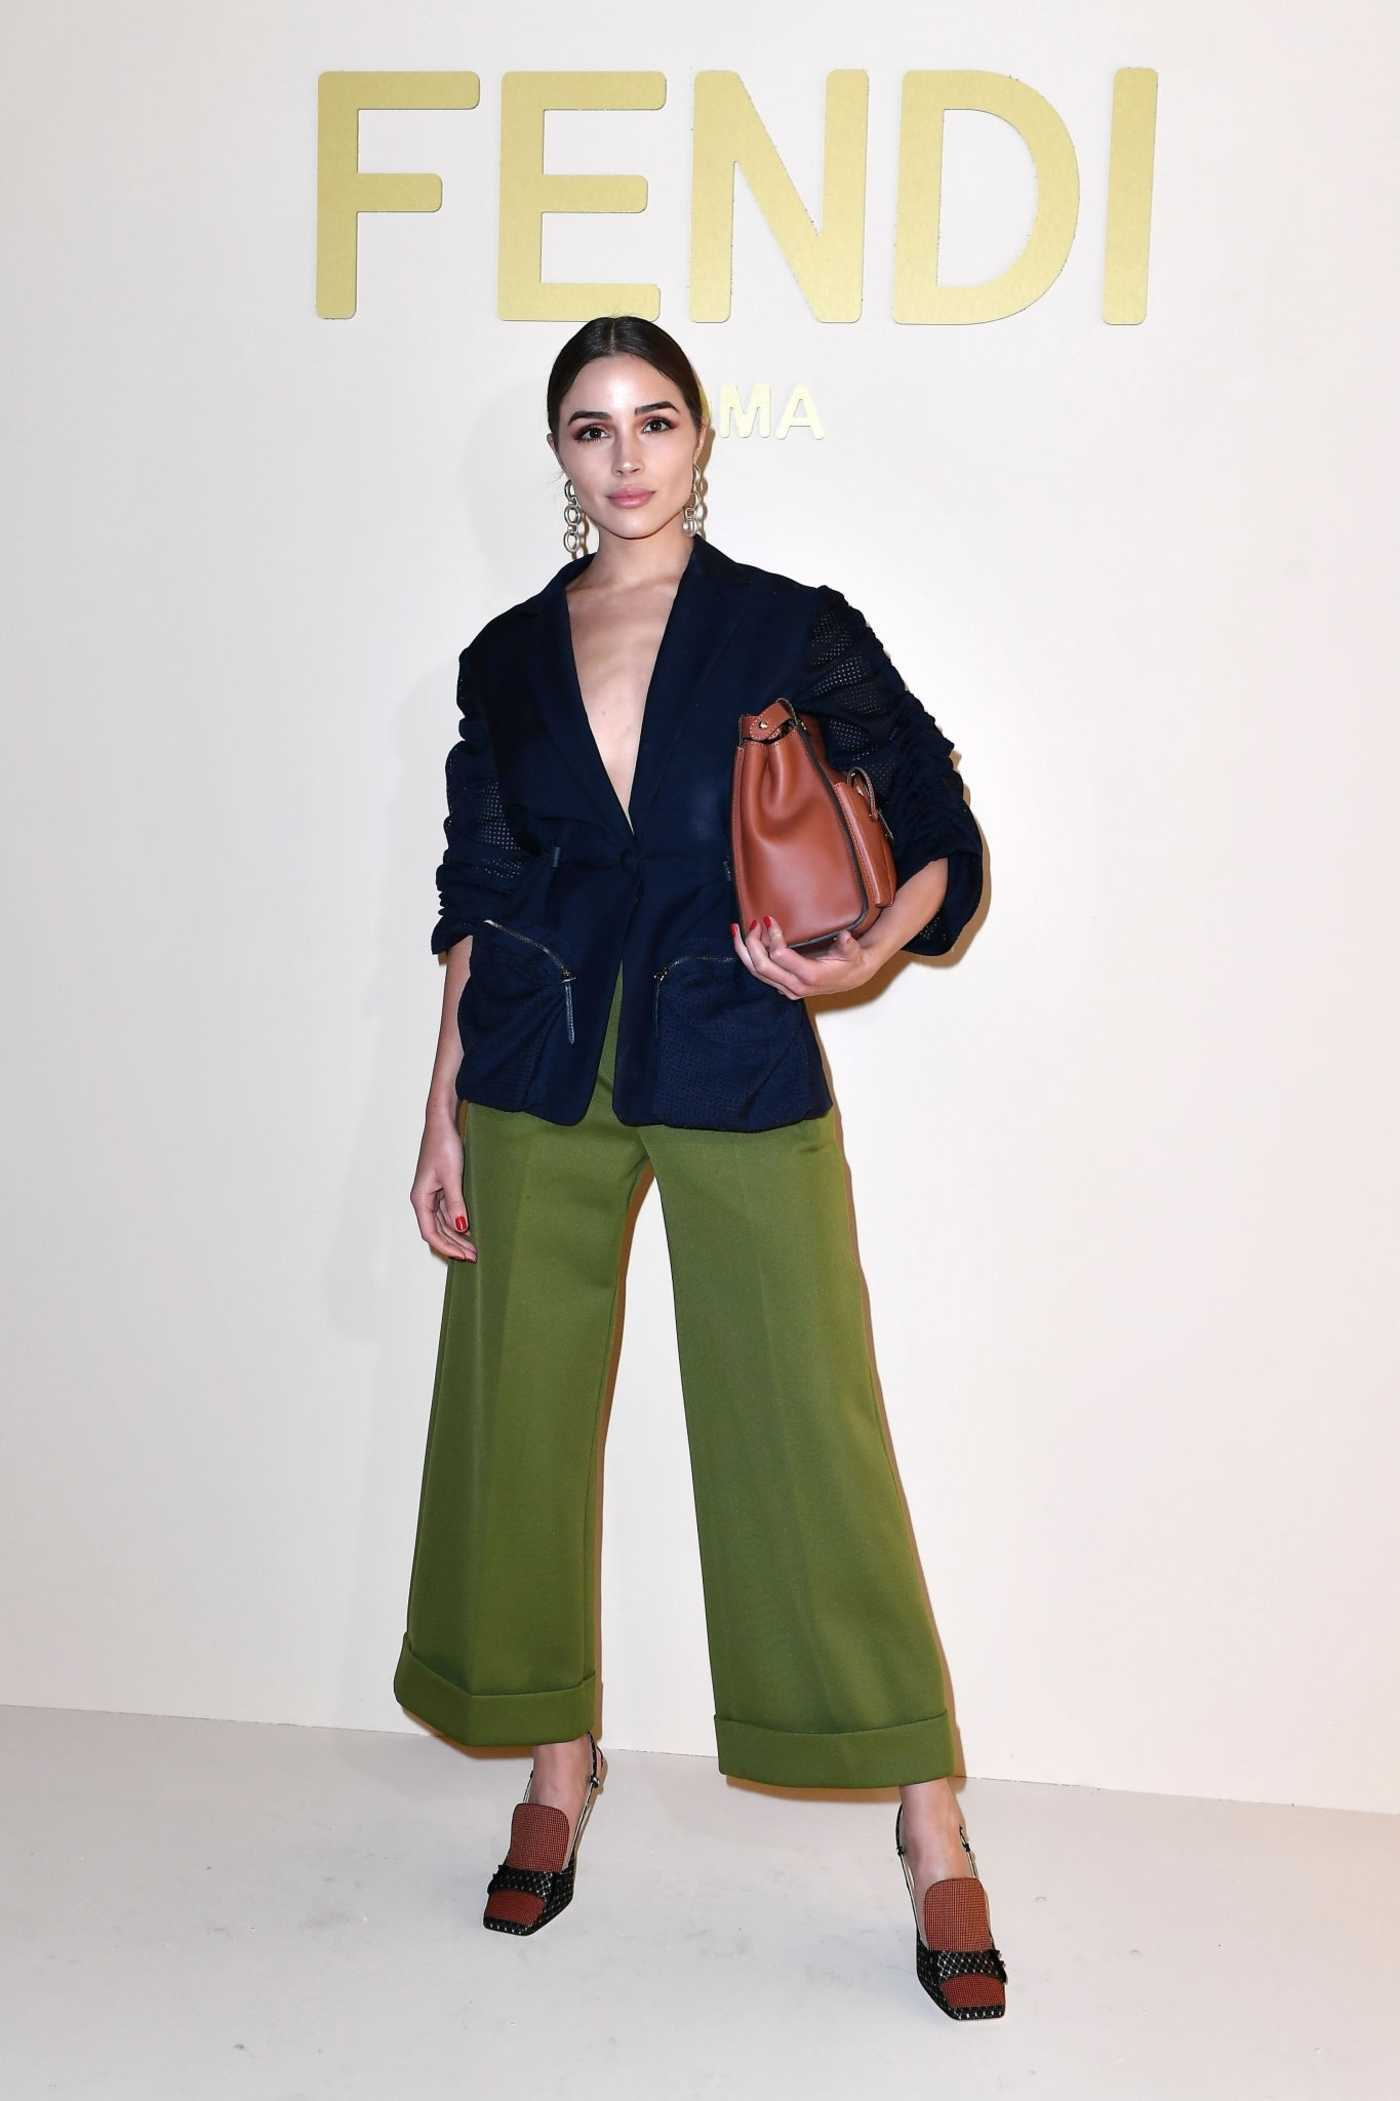 Olivia Culpo Attends the Fendi Show During Milan Fashion Week in Milan 02/21/2019